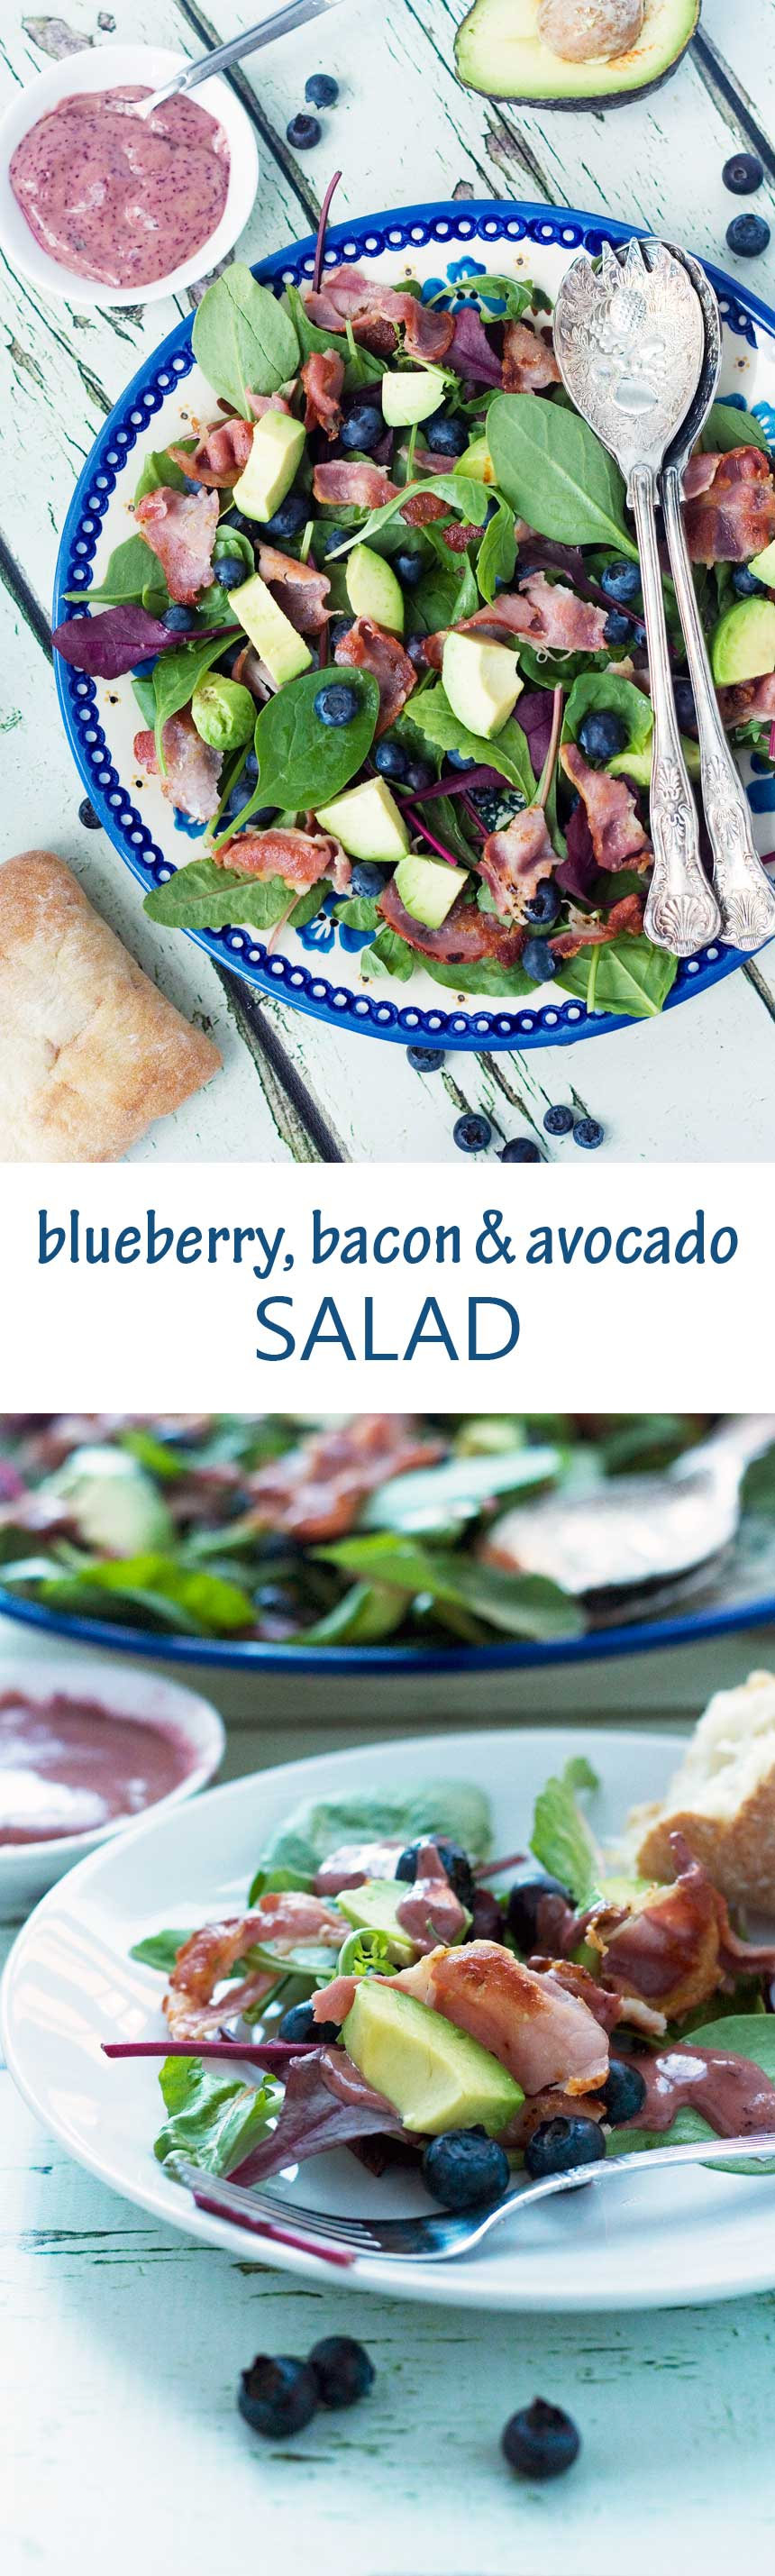 Blueberry, bacon & avocado salad with a delicious (purple!) blueberry dressing.